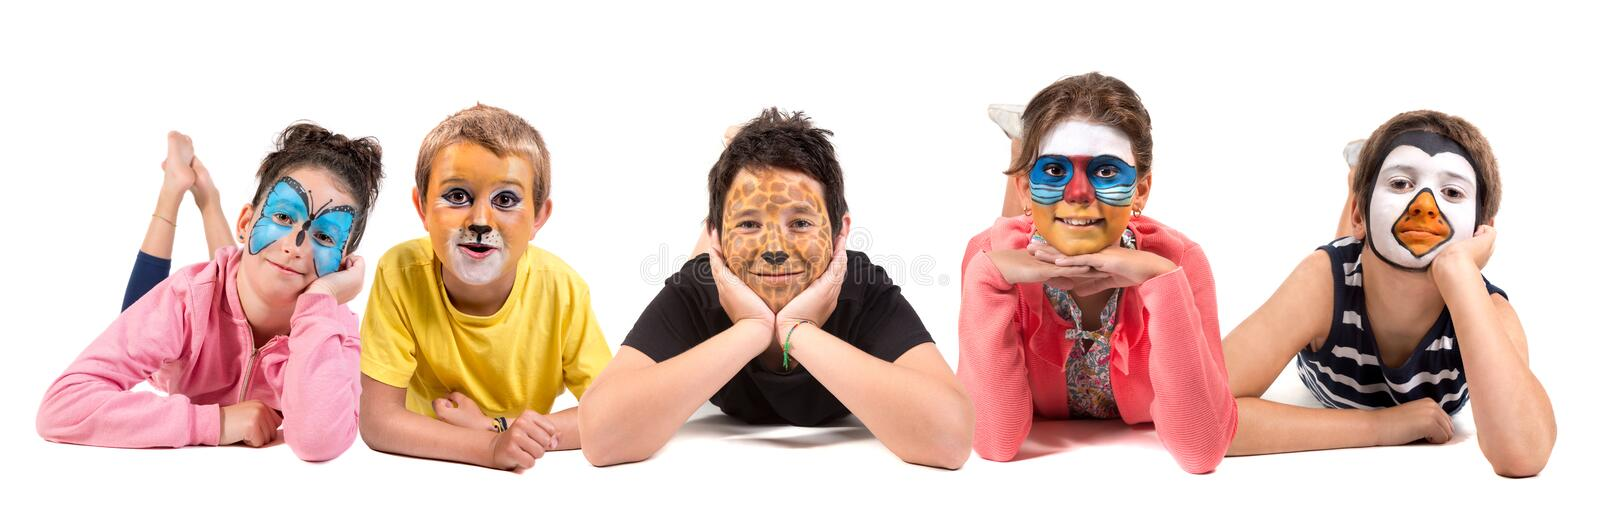 Kids with animal face-paint royalty free stock photography